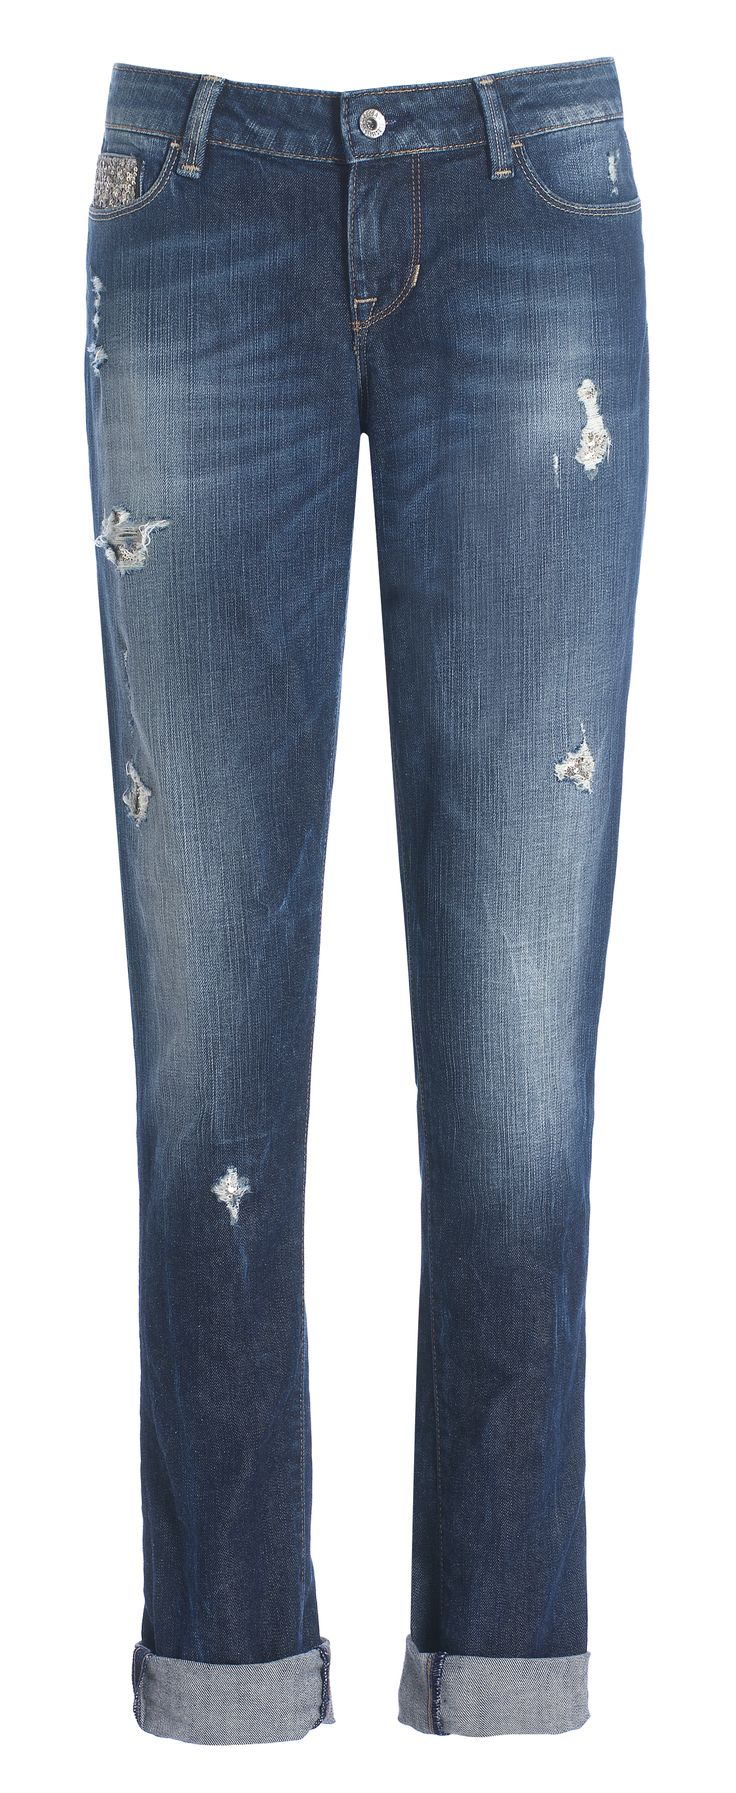 Guess sequined jeans